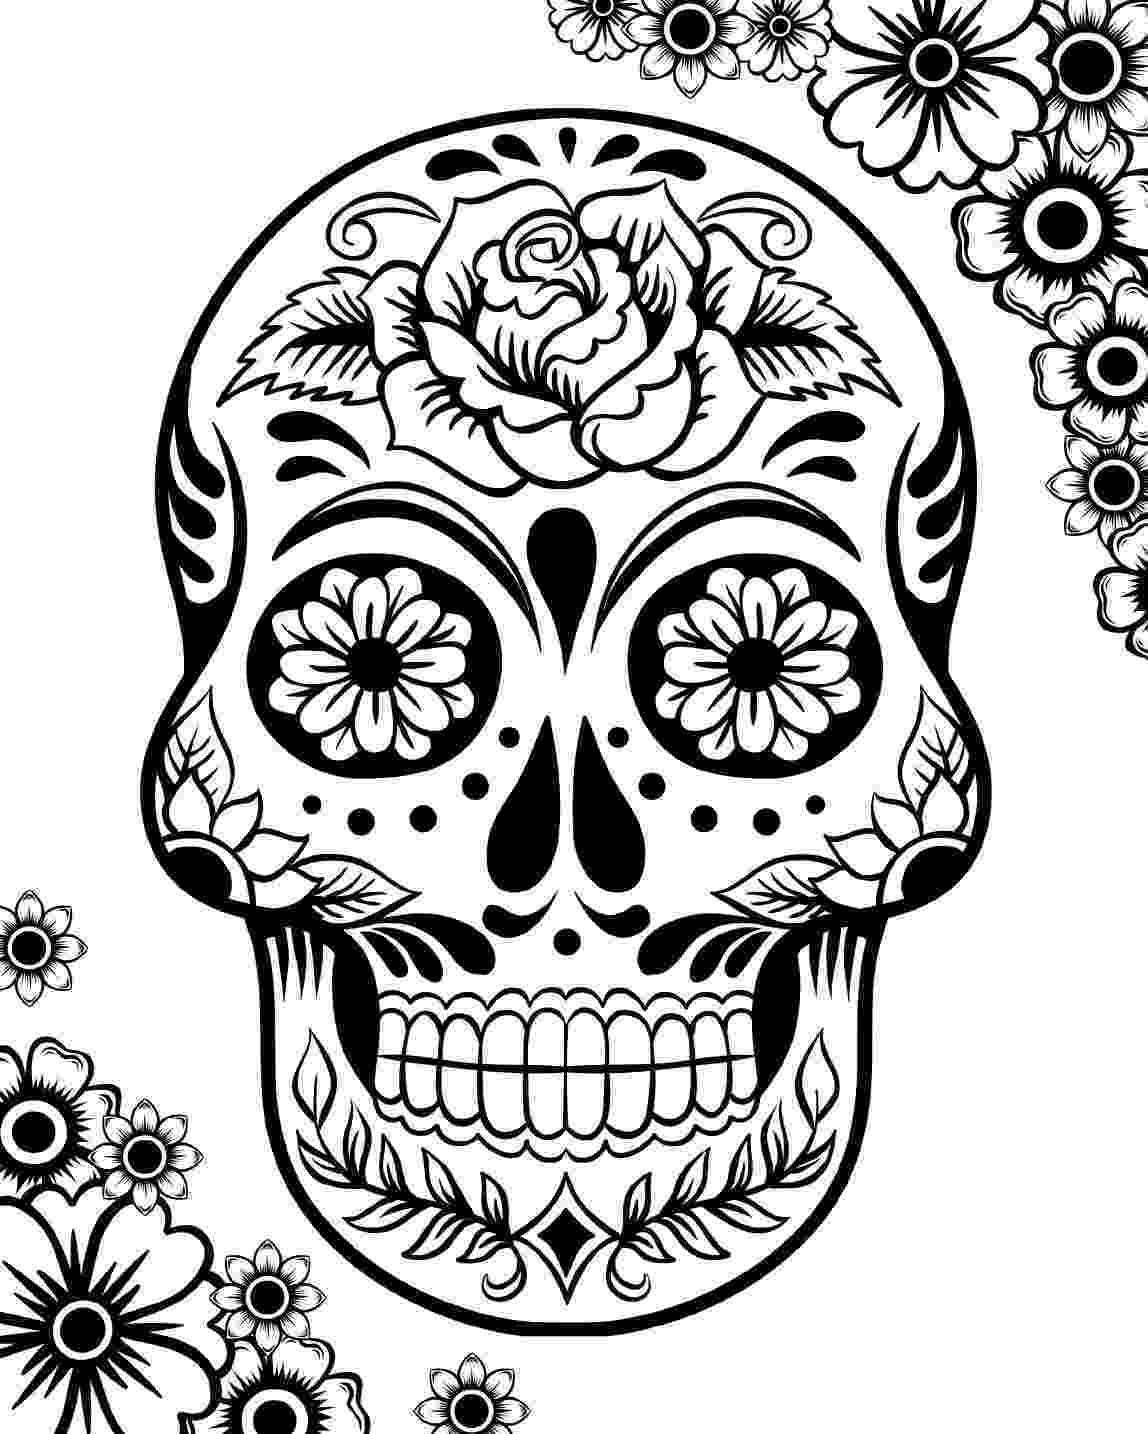 skull coloring sheets skull coloring pages for adults skull sheets coloring